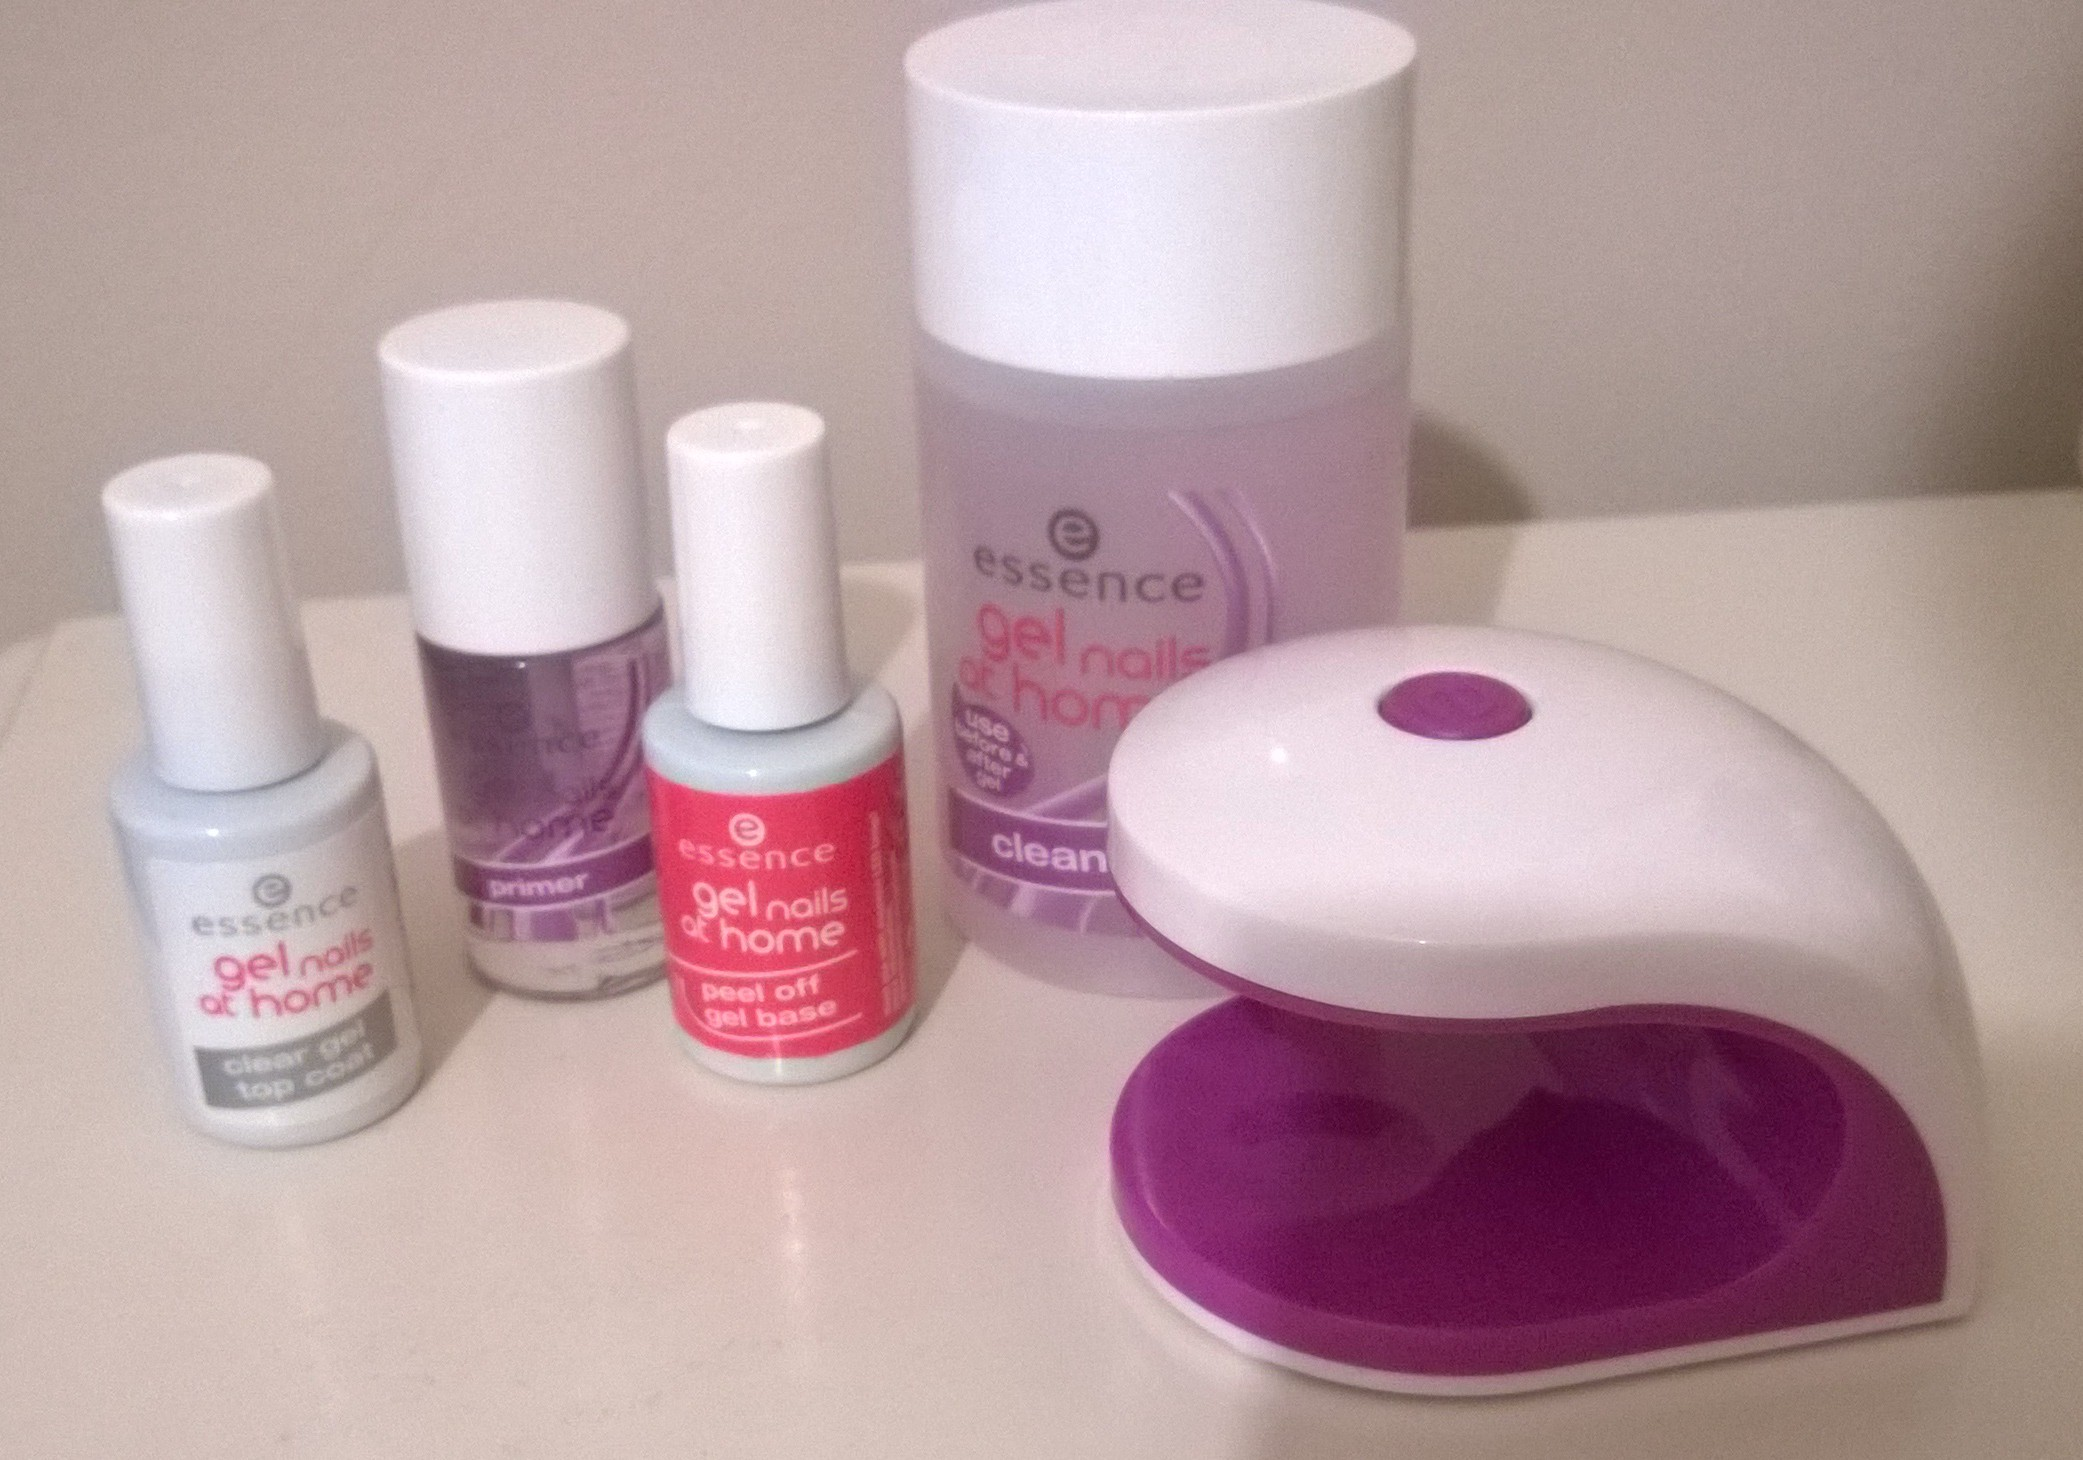 ESSENCE GEL NAILS AT HOME: REVIEW AND PICTURES